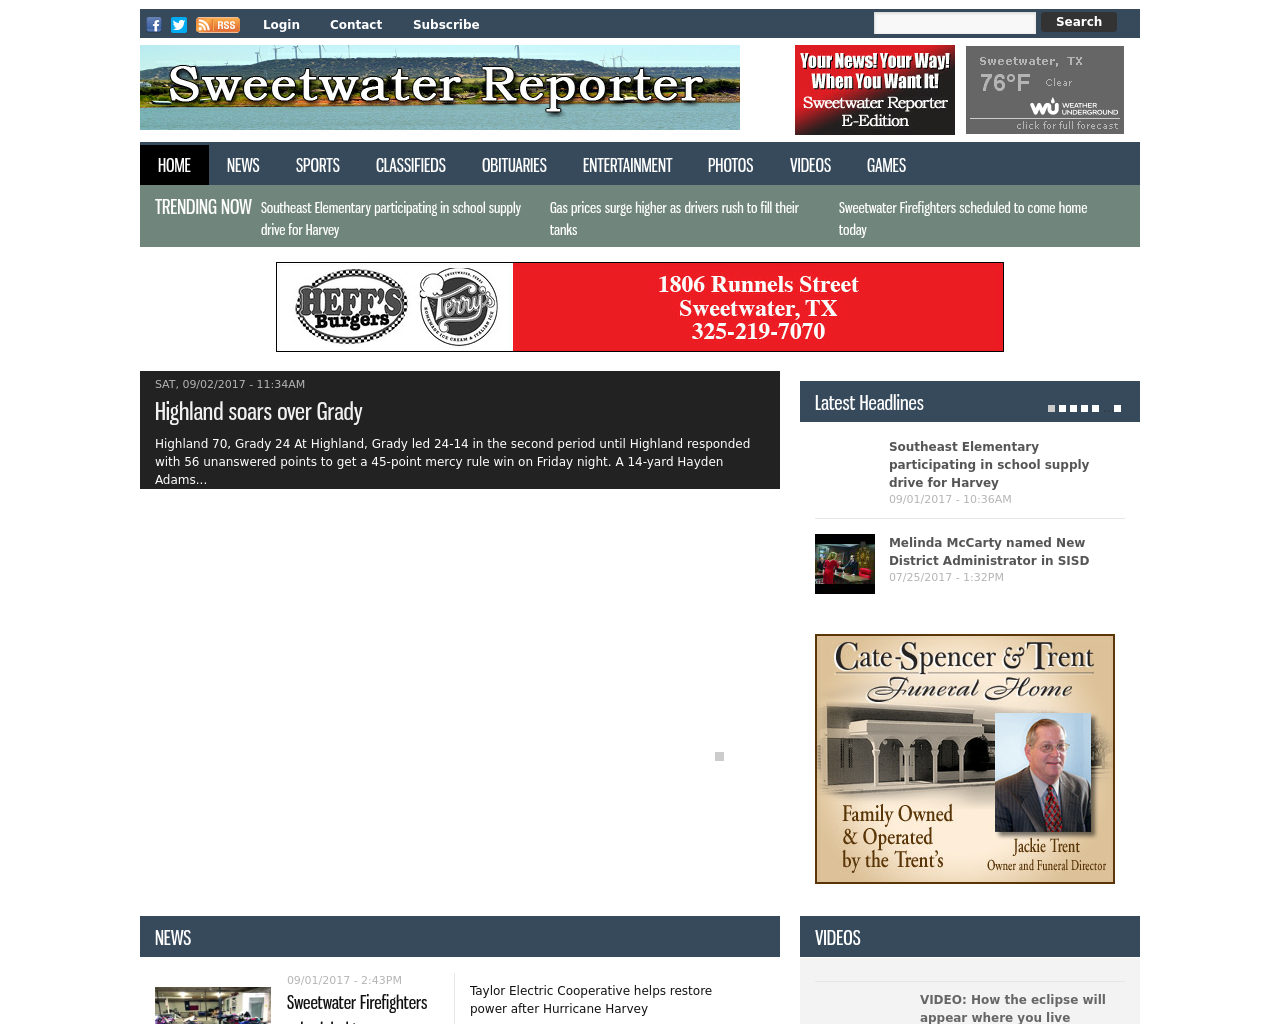 Sweetwater-Reporter-Advertising-Reviews-Pricing